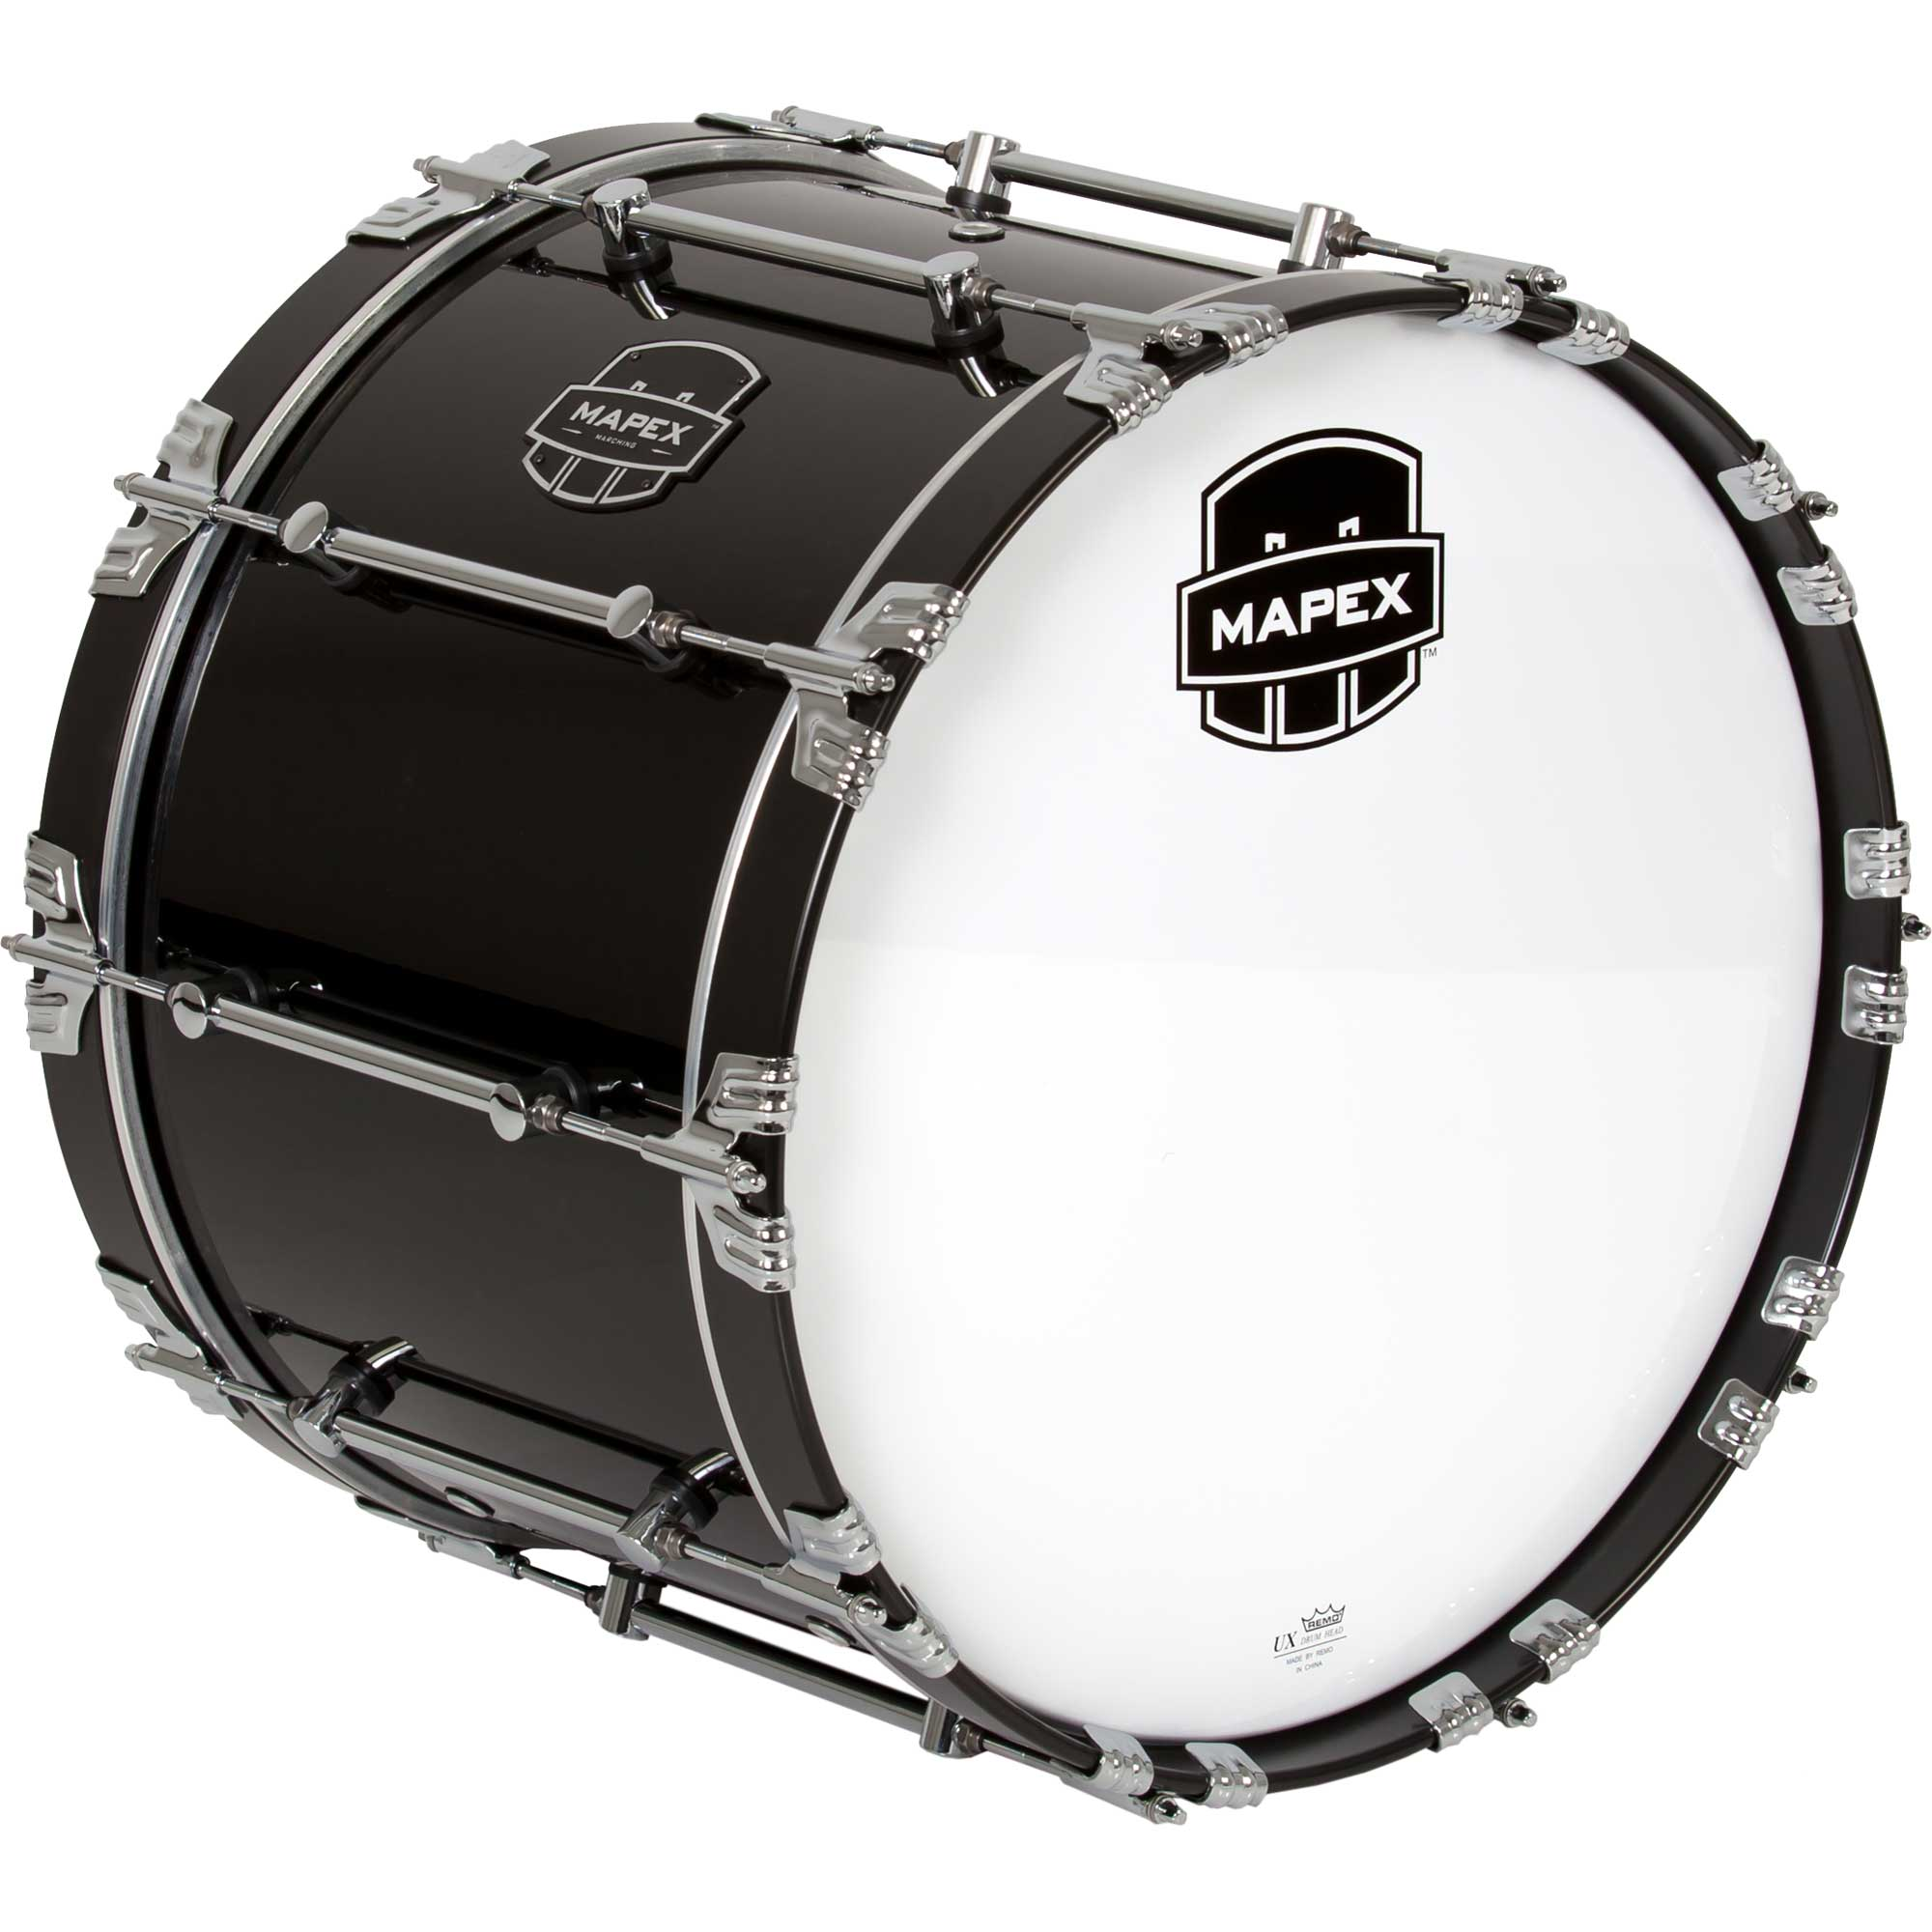 mapex 22 quantum marching bass drum in gloss black qcb2214 bl gc. Black Bedroom Furniture Sets. Home Design Ideas